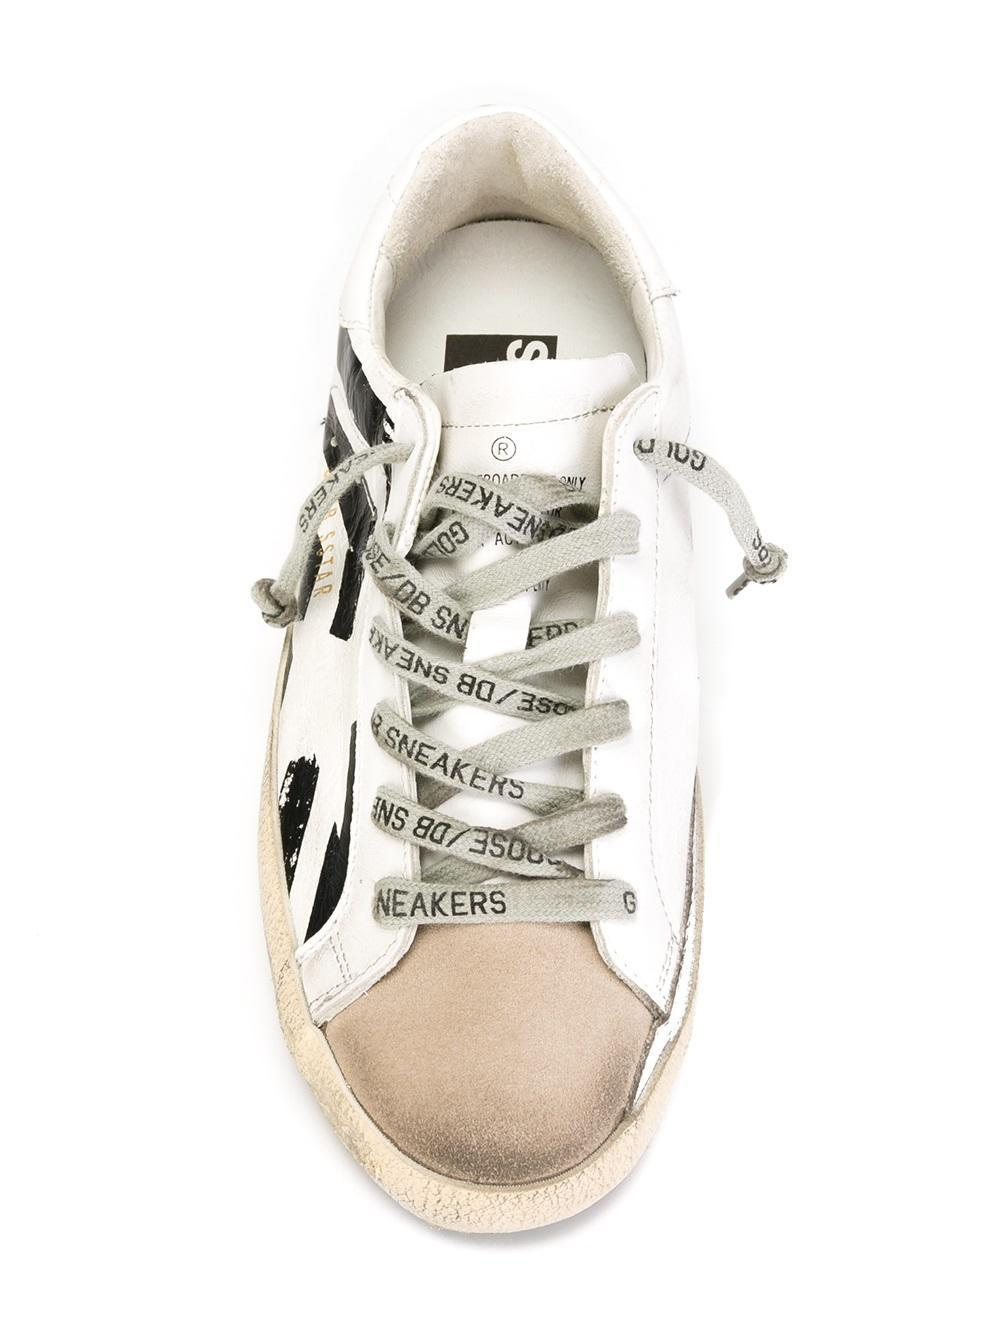 Golden Goose Deluxe Brand Superstar Striped Leather Sneakers in White